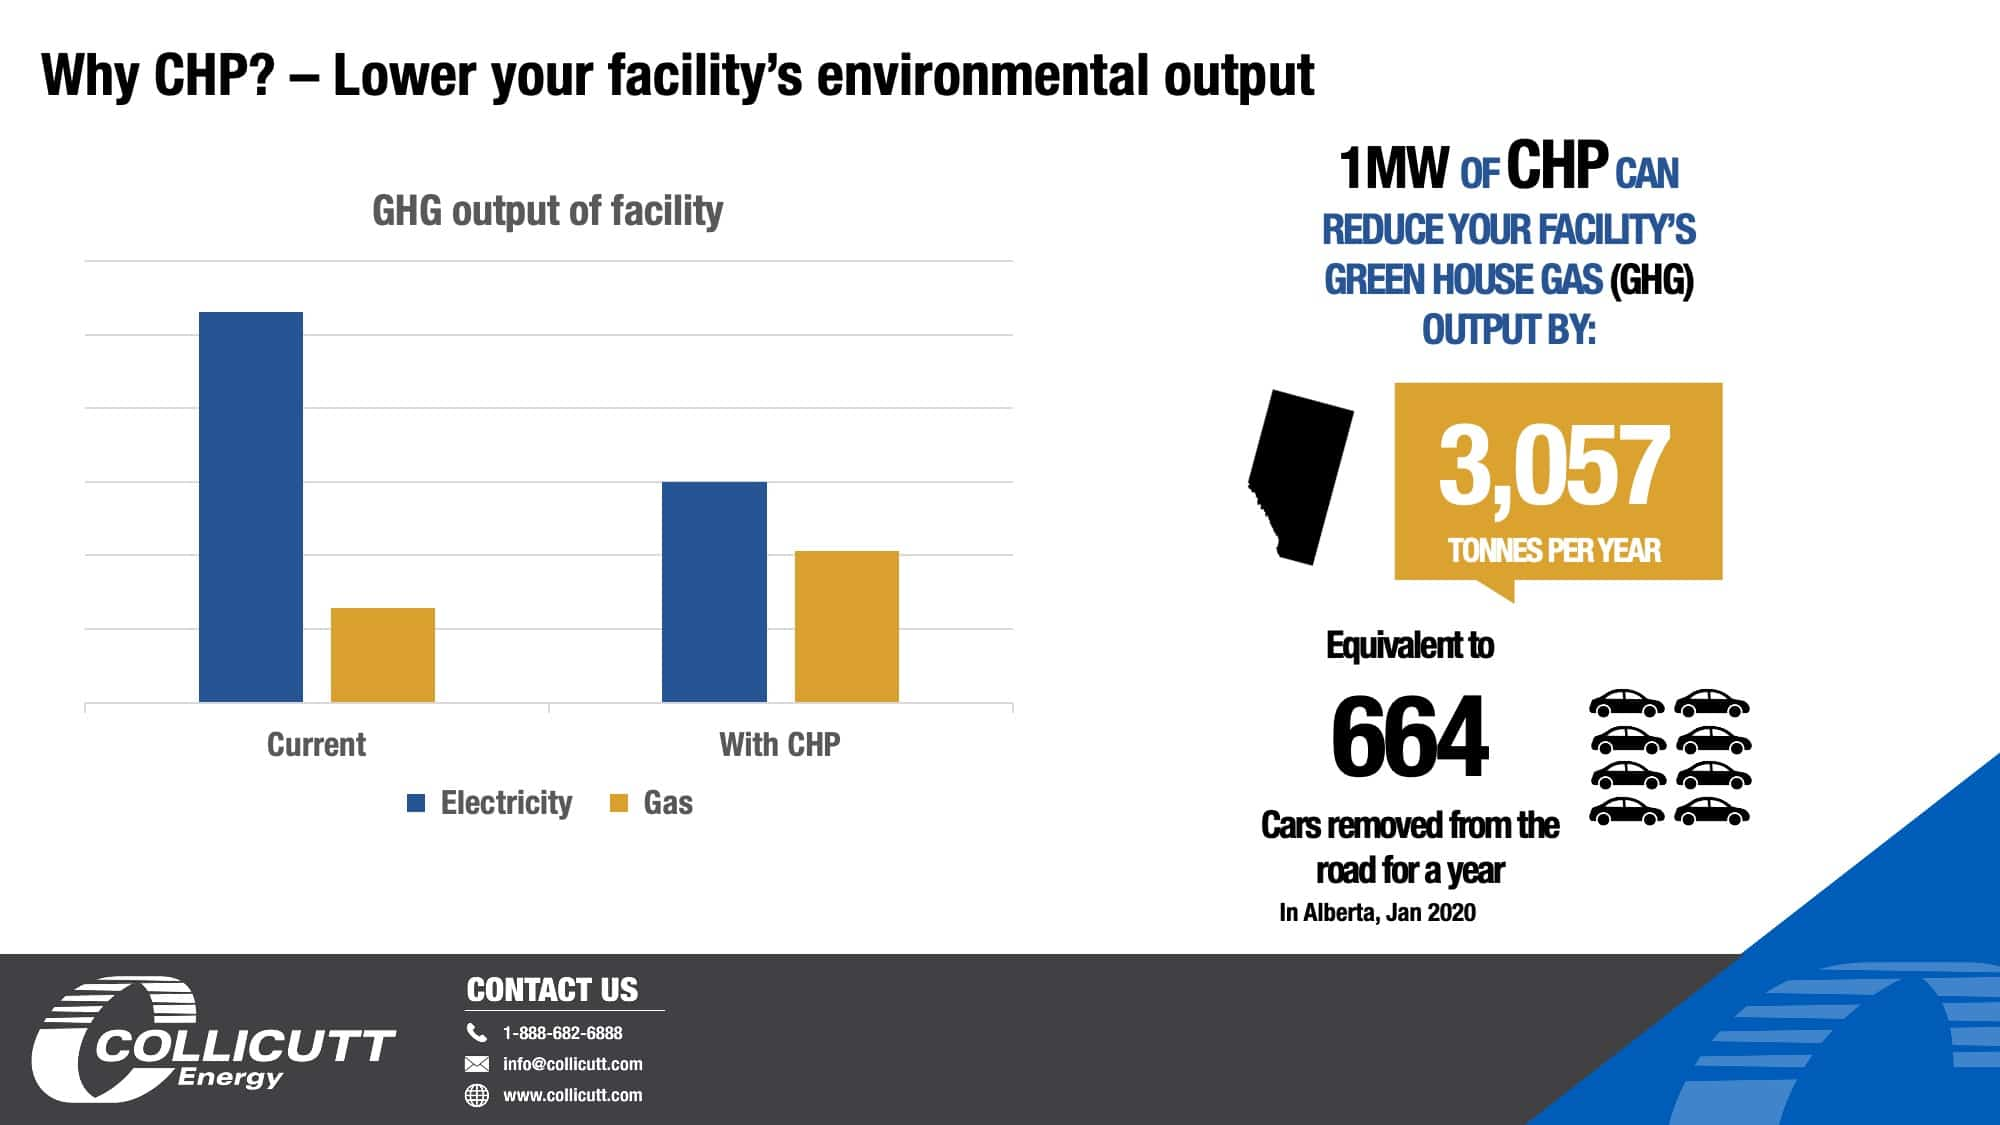 Lower your facility's environmental output